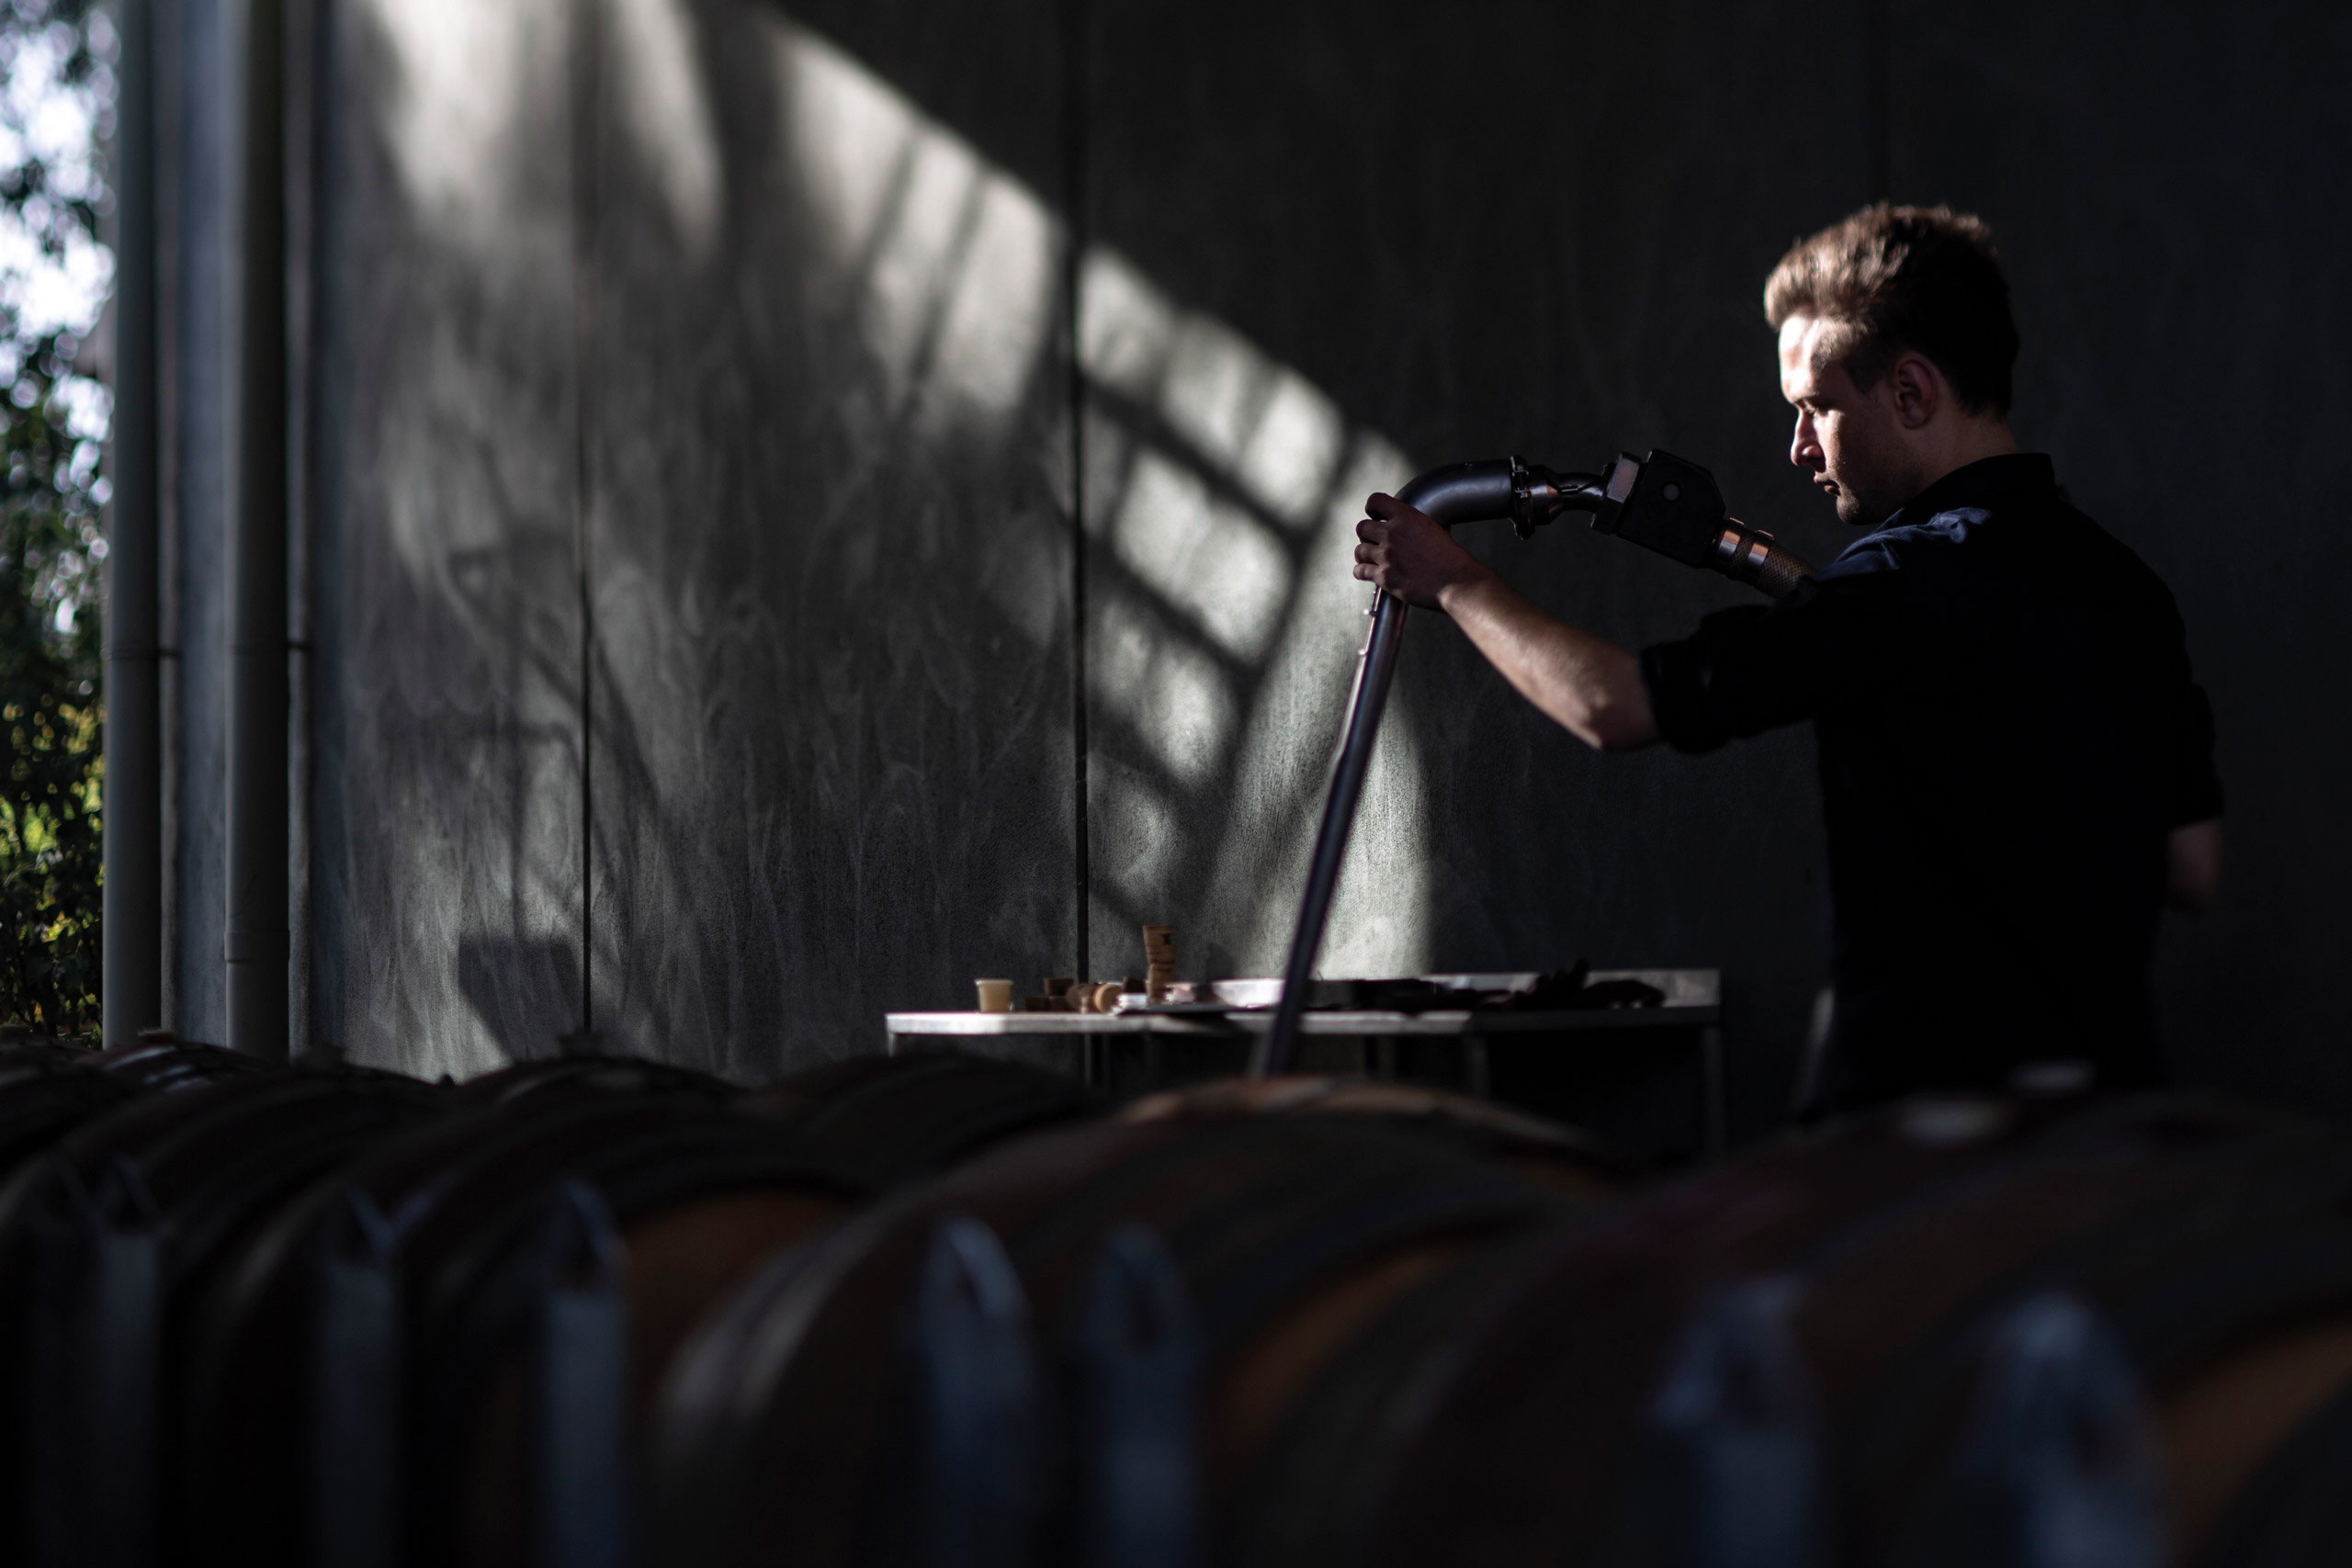 guy-lavoipierre-helens-hill-winery-03